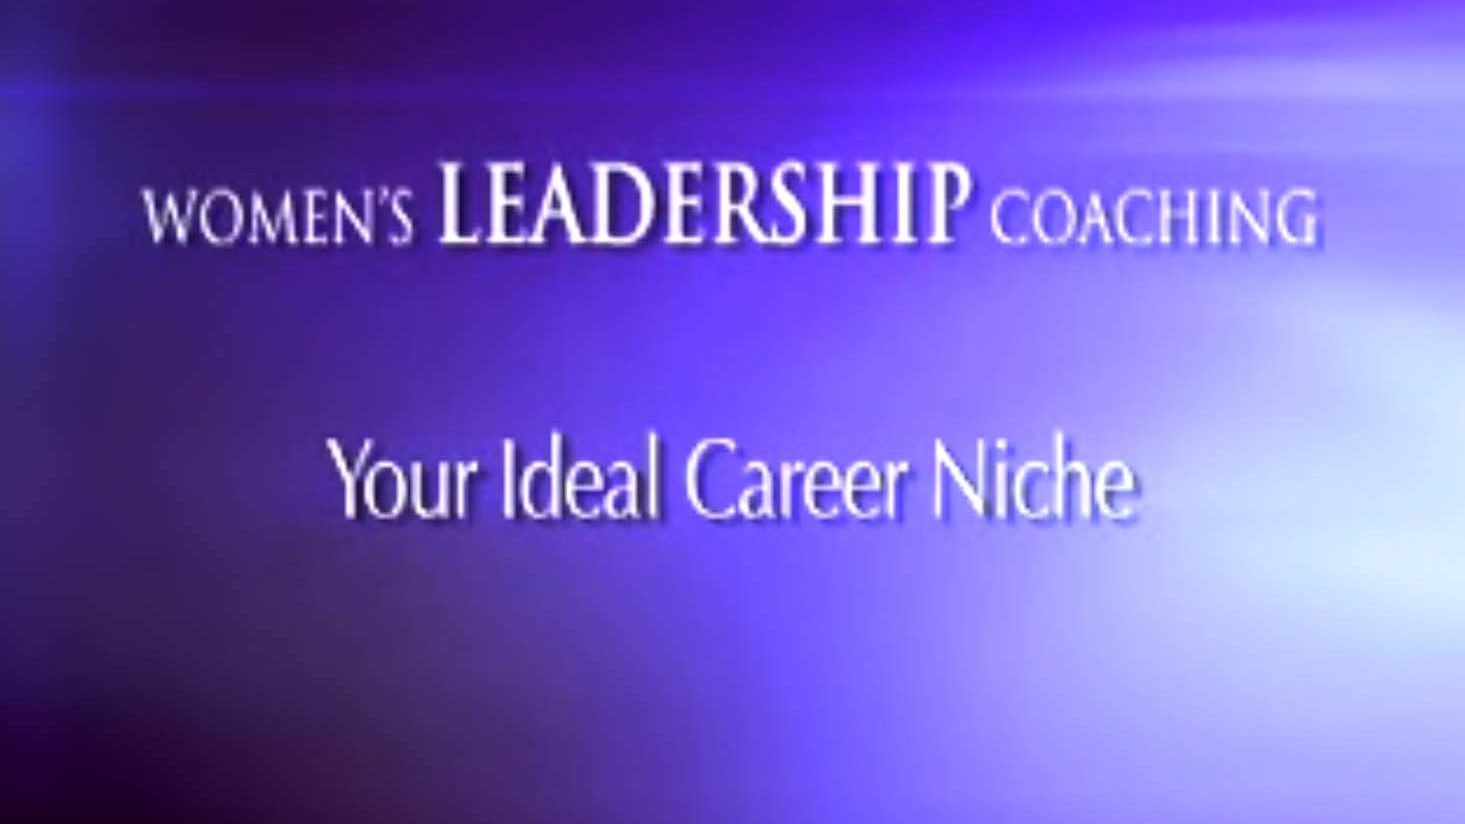 Your Ideal Career Niche